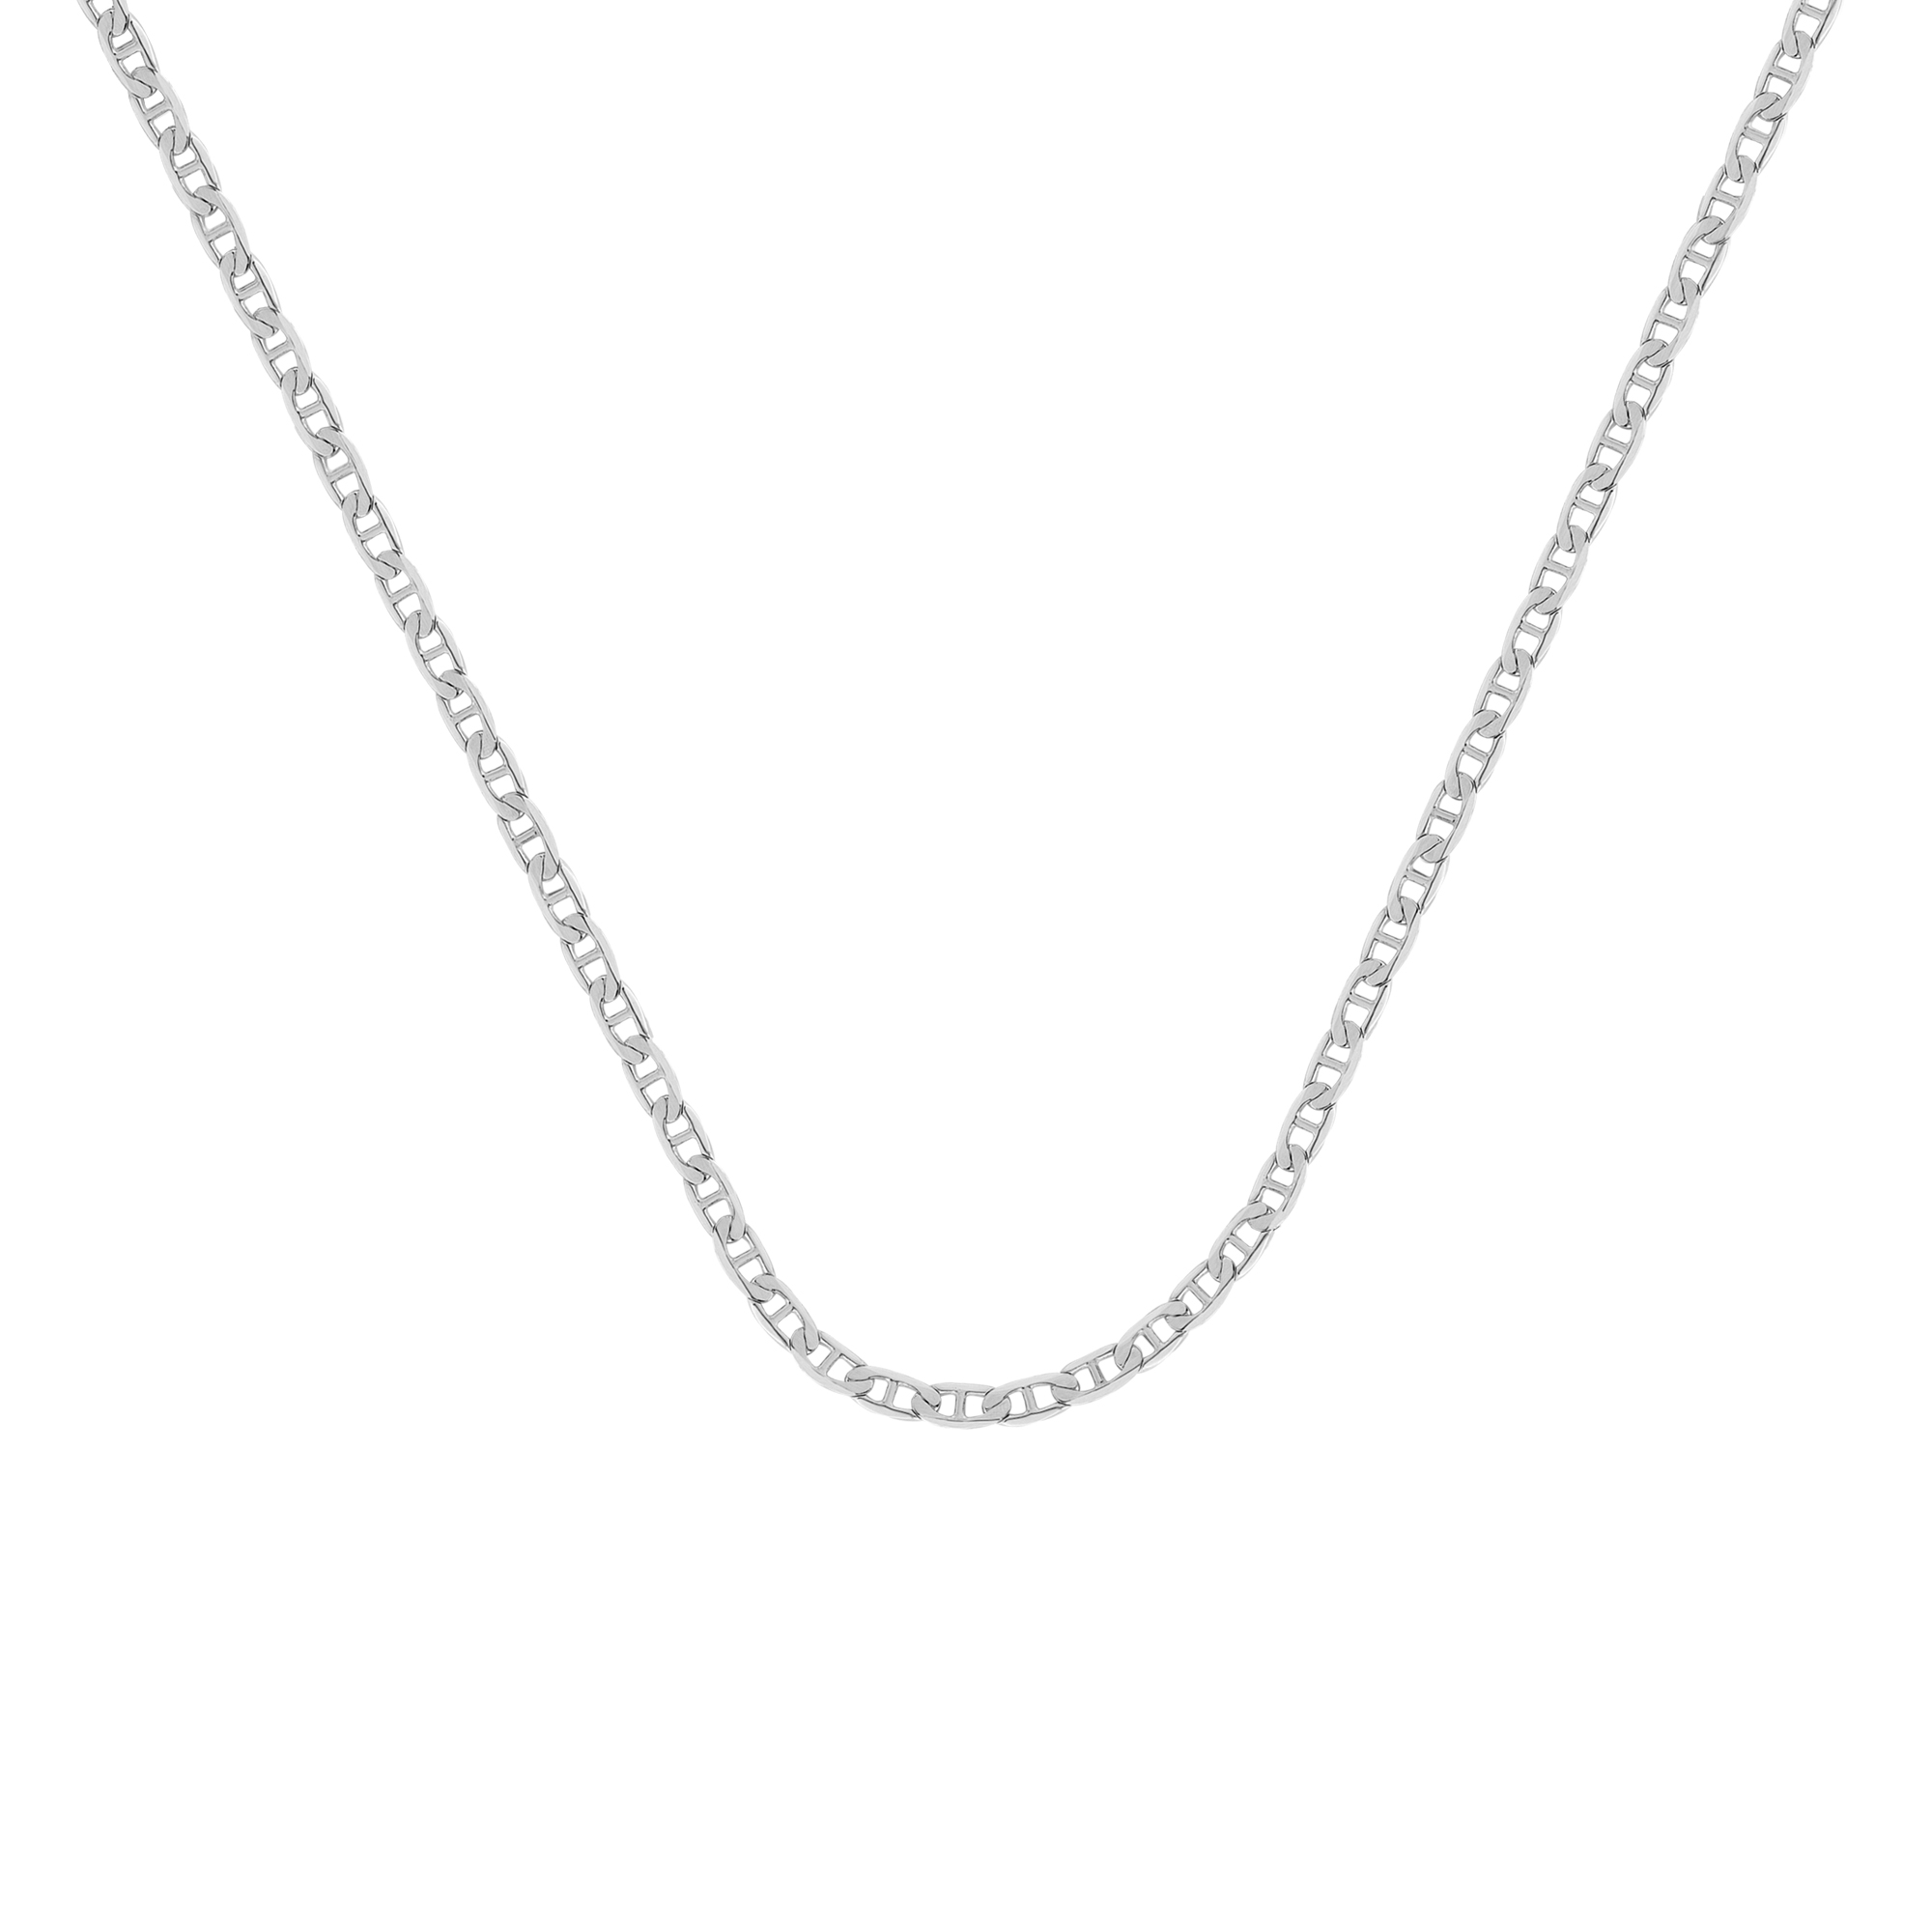 Mariner Chain , 14Kt Gold  Mariner Chain With Lobster Lock / 20